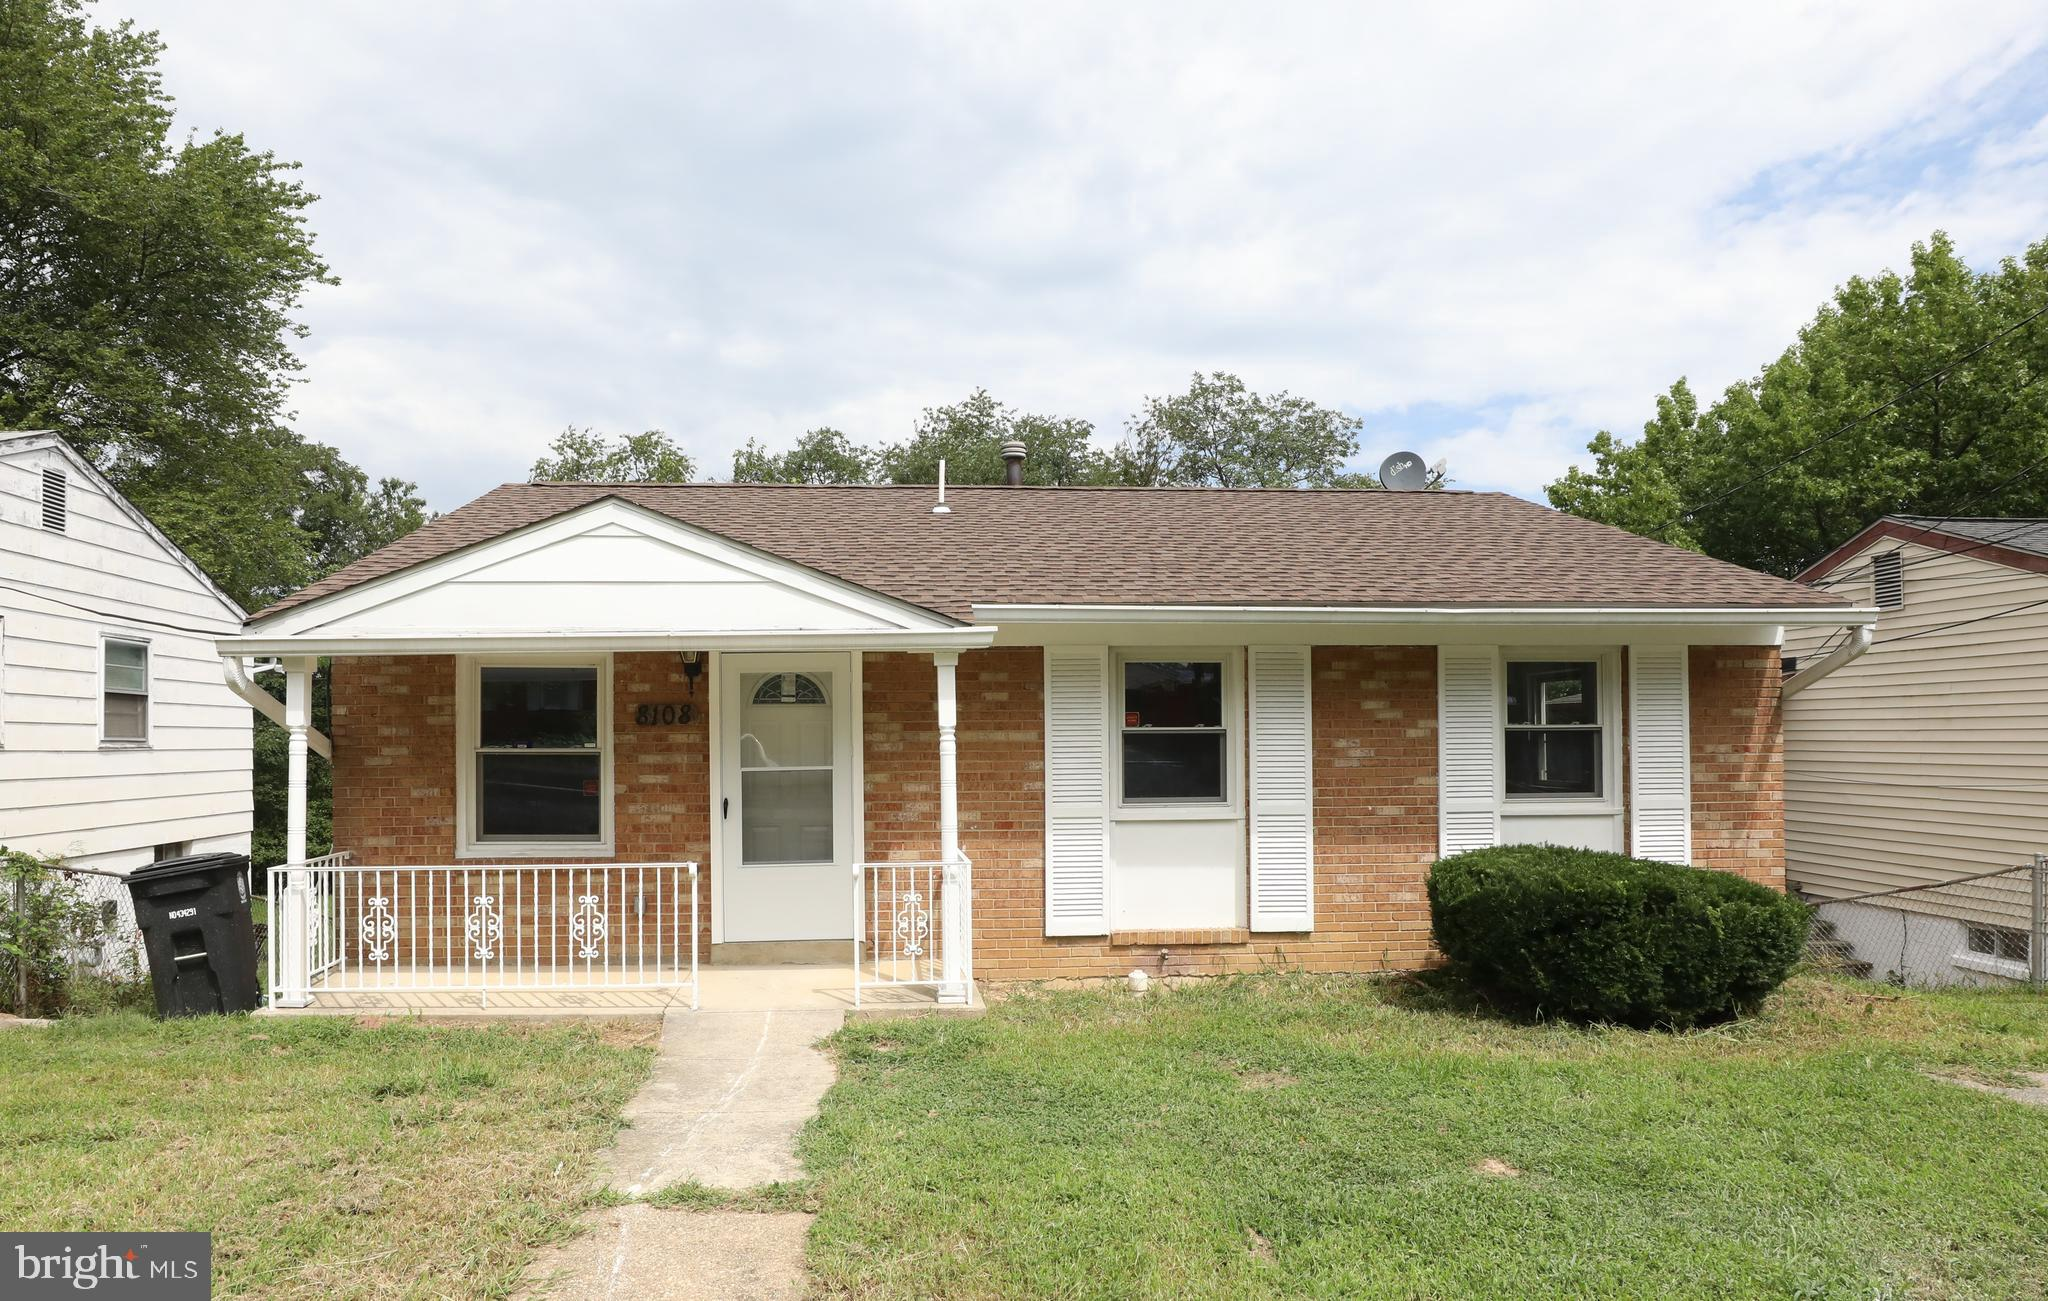 Fully Remodeled 5BR/2.5 BA spacious home is priced to sell!  This BEAUTIFULLY remodeled home is full